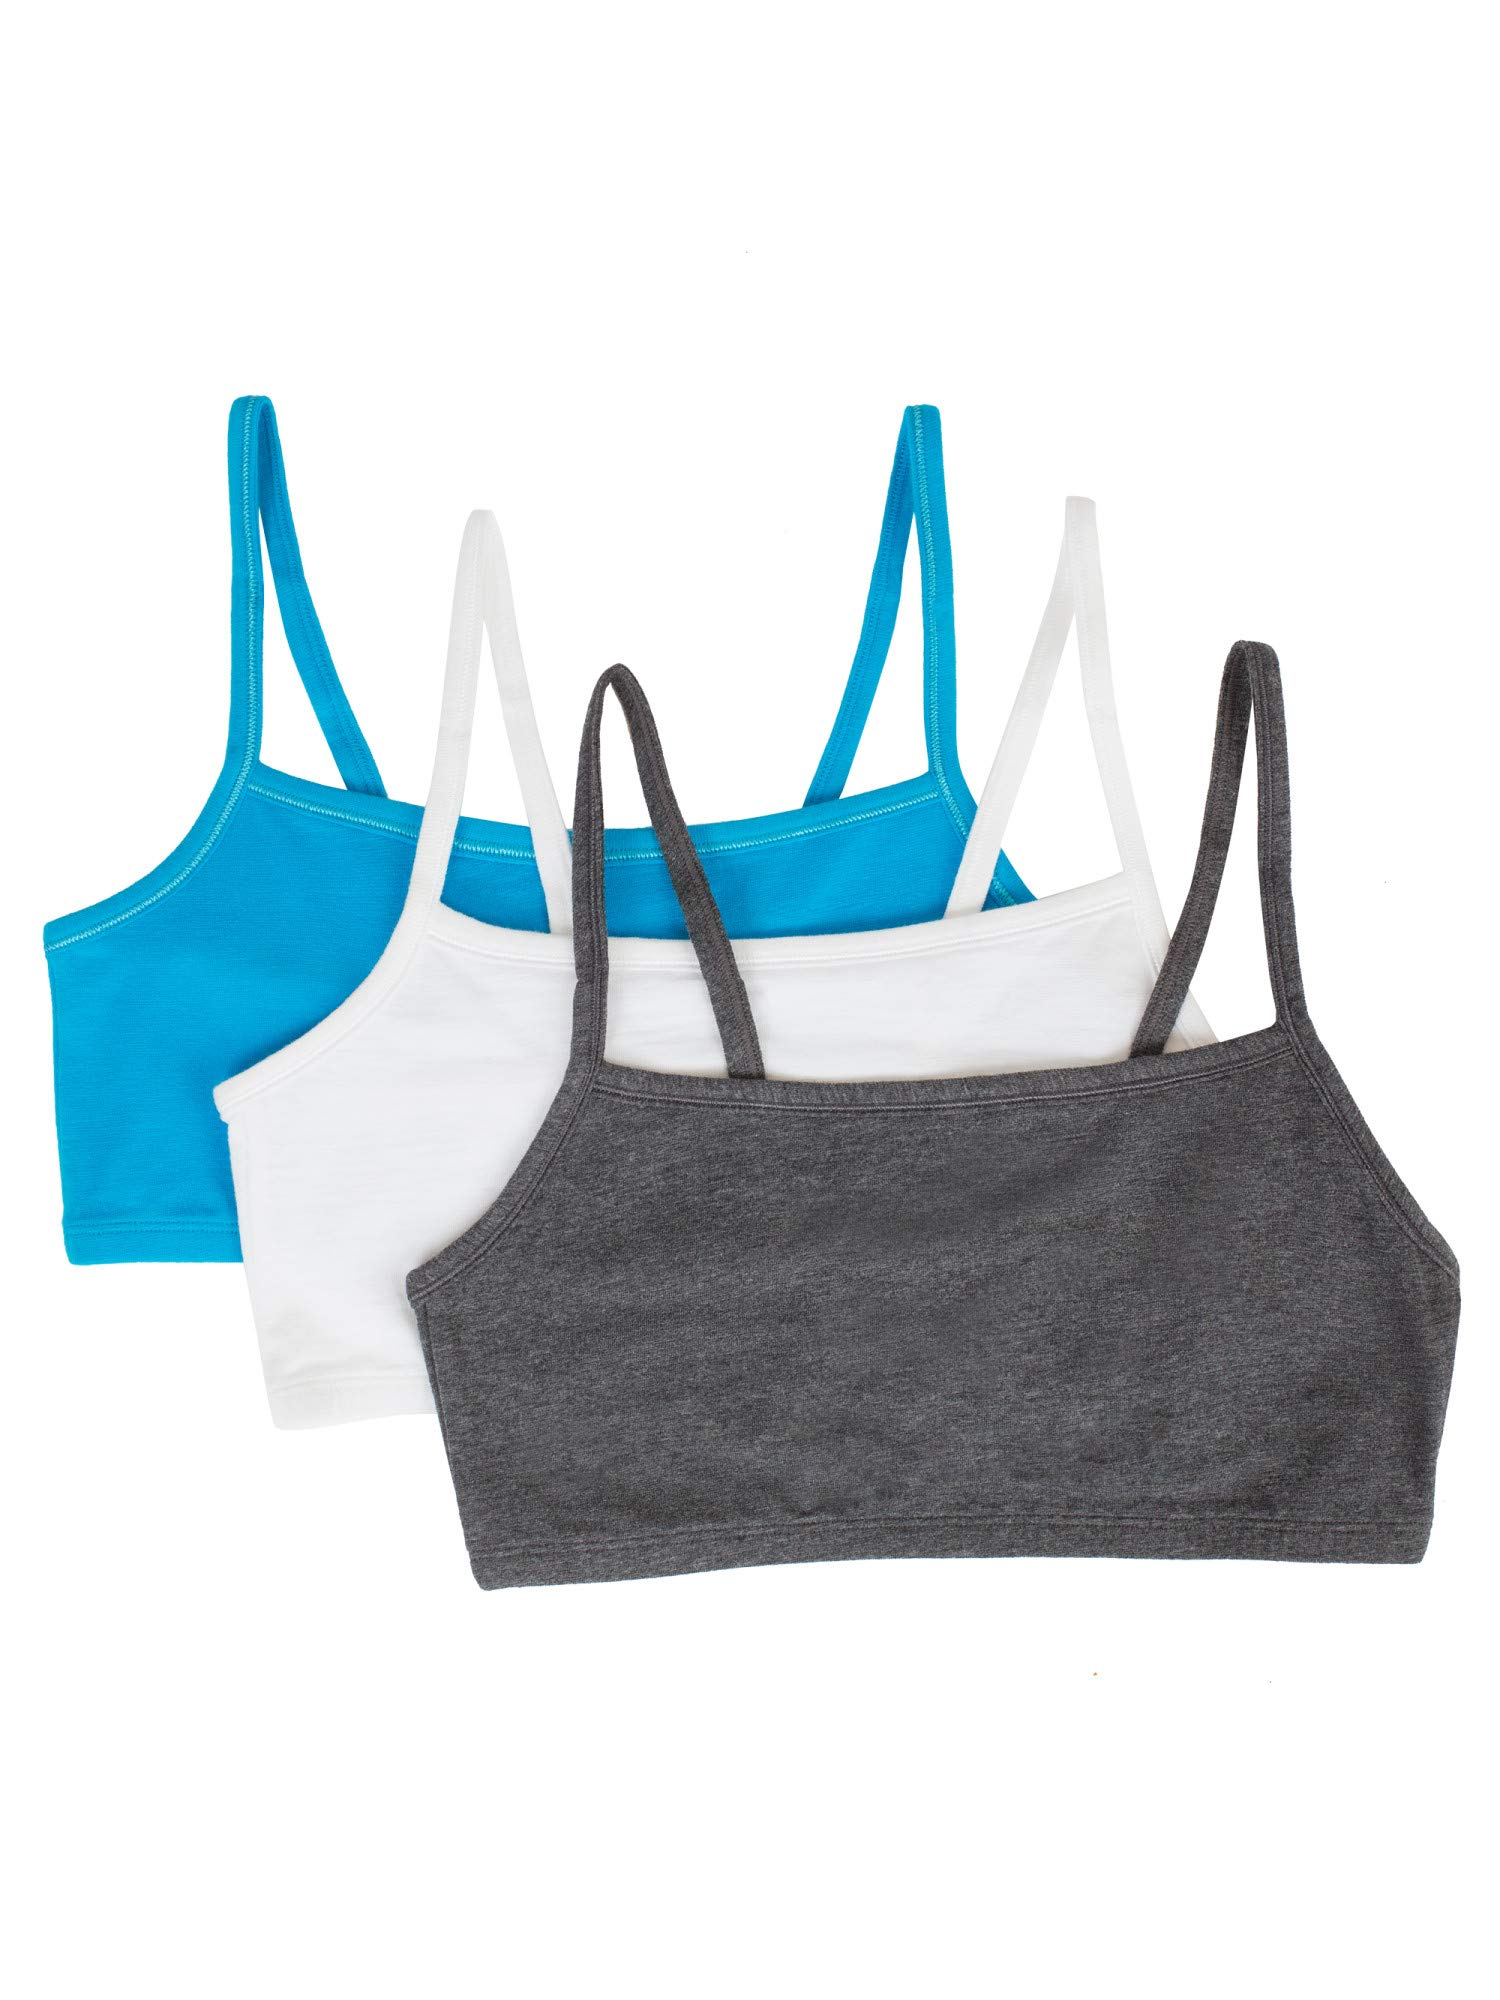 Fruit of the Loom Women's Cotton Pullover Sport Bra, Charcoal Heather White/ISAZURE-3 Pack, 32 by Fruit of the Loom